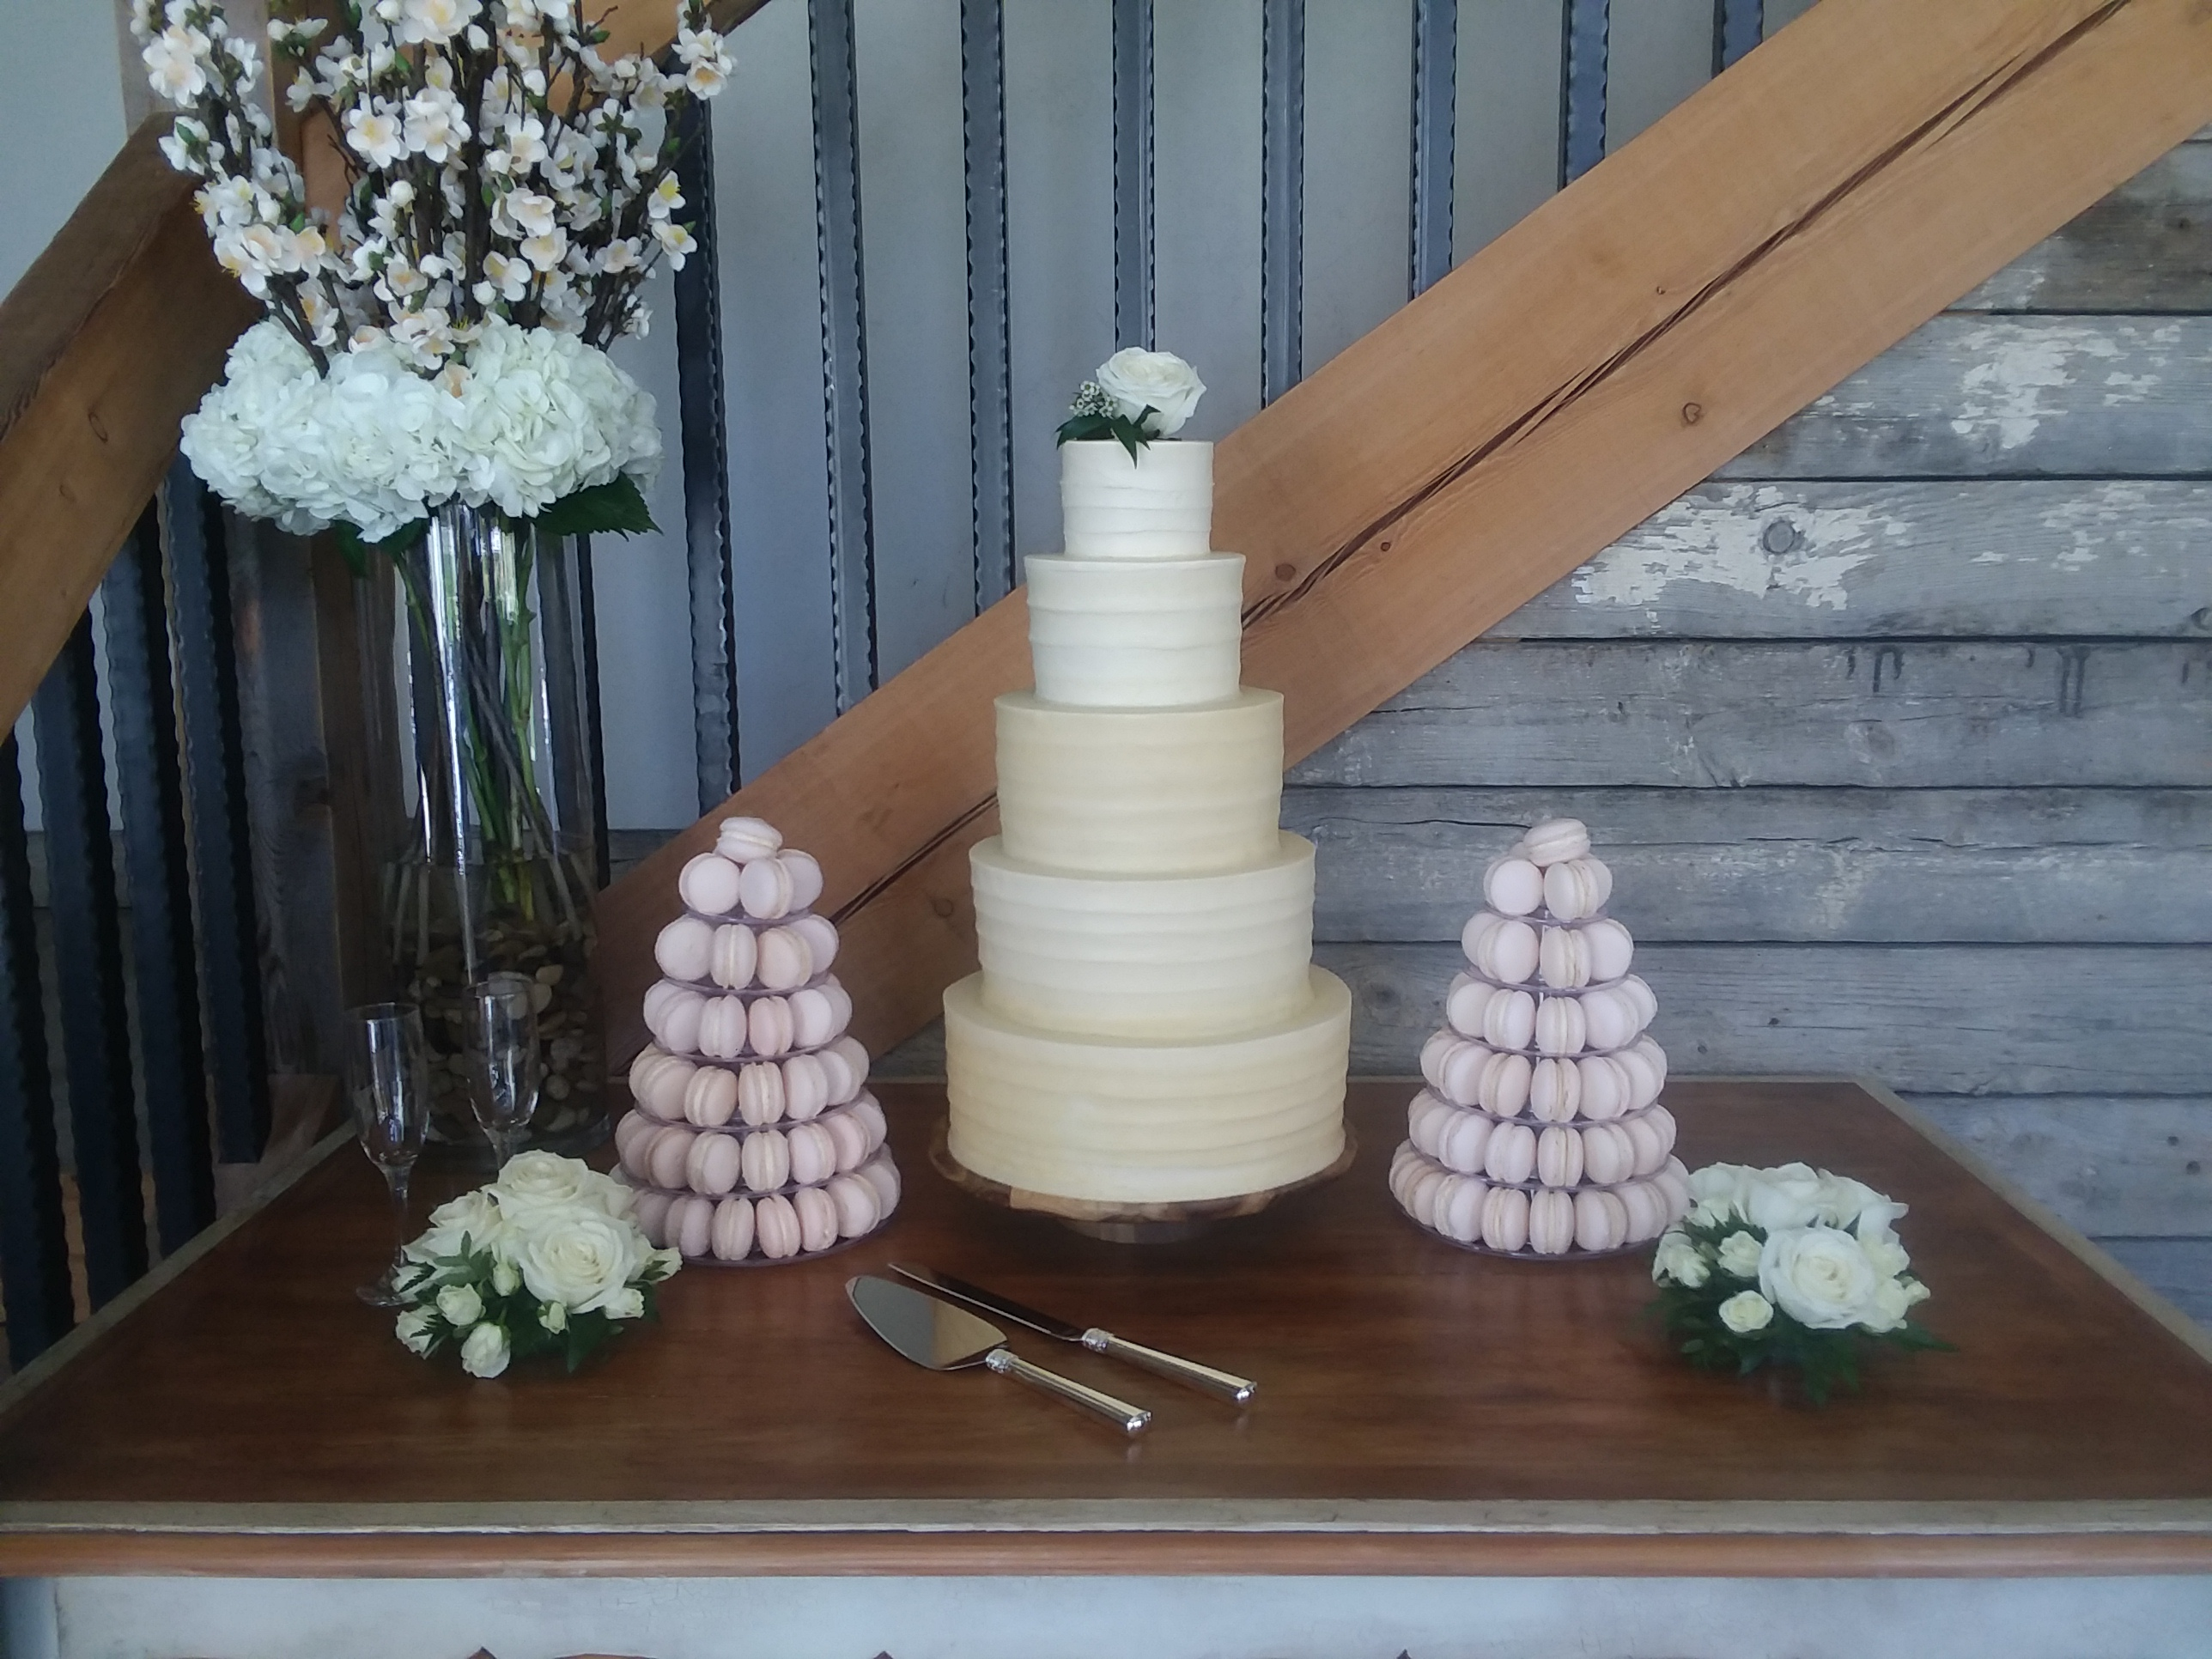 5-Tier Wedding Cake & French macarons